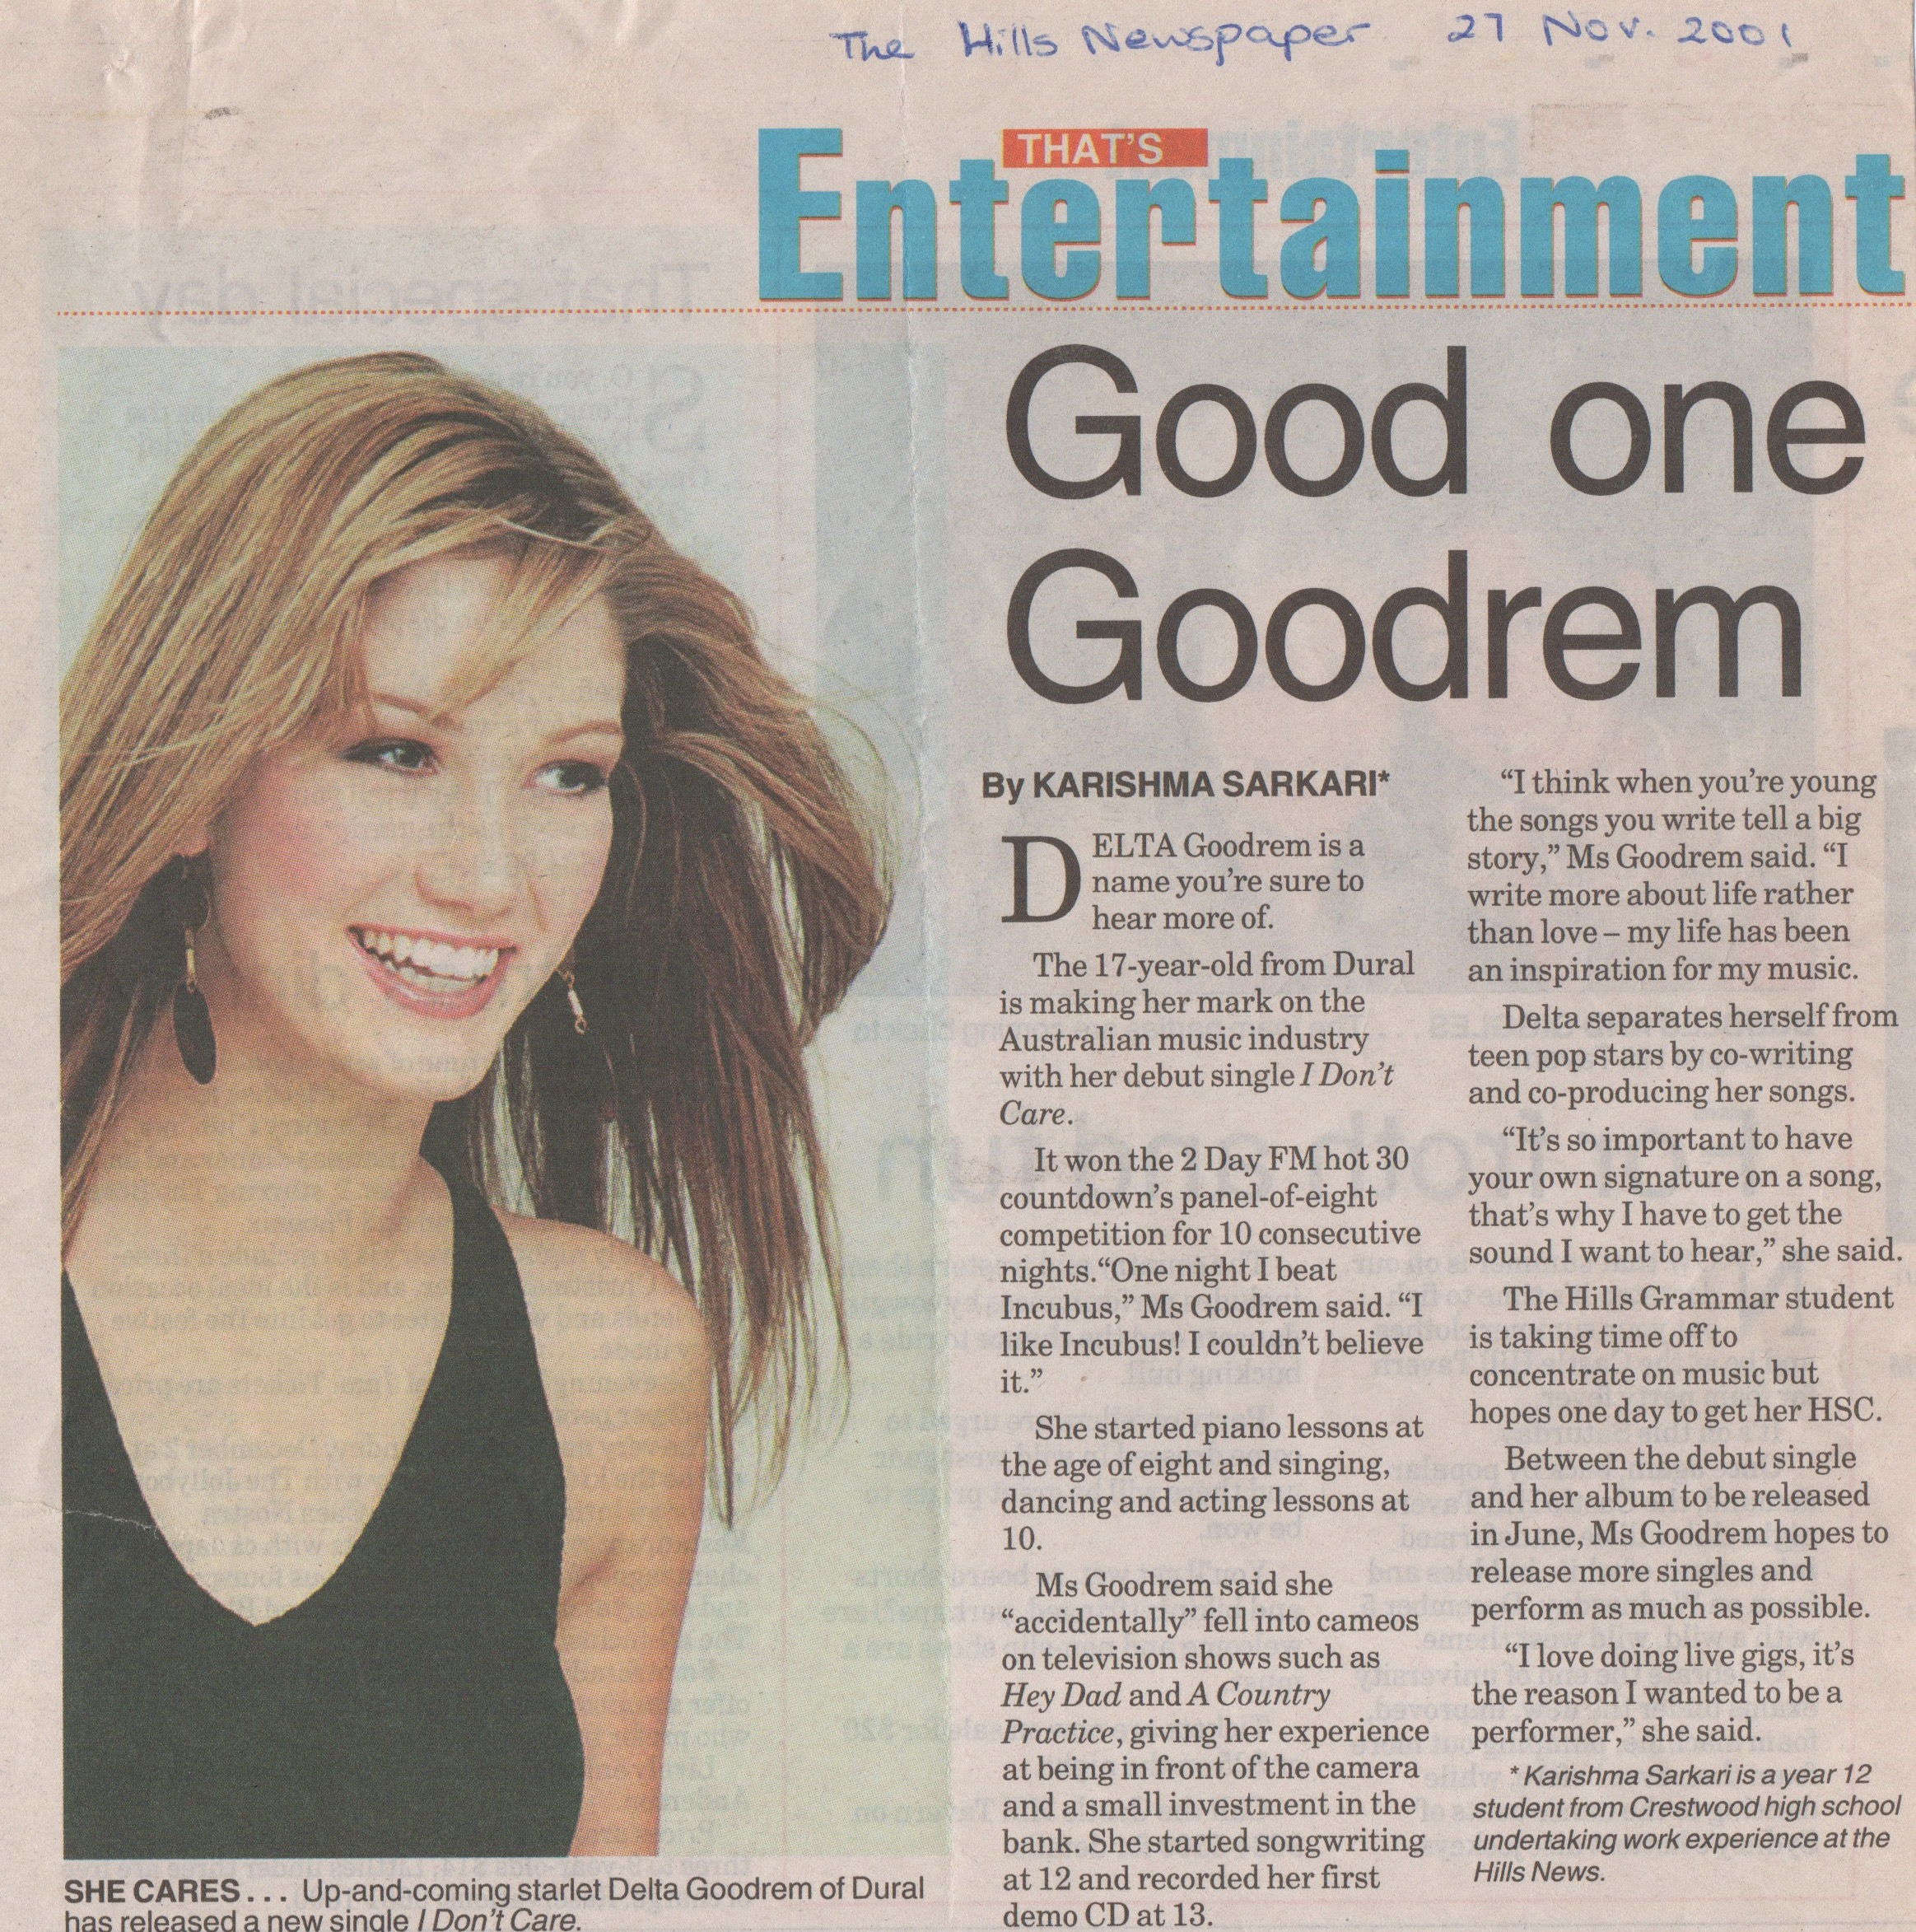 Delta Goodrem Feature Article